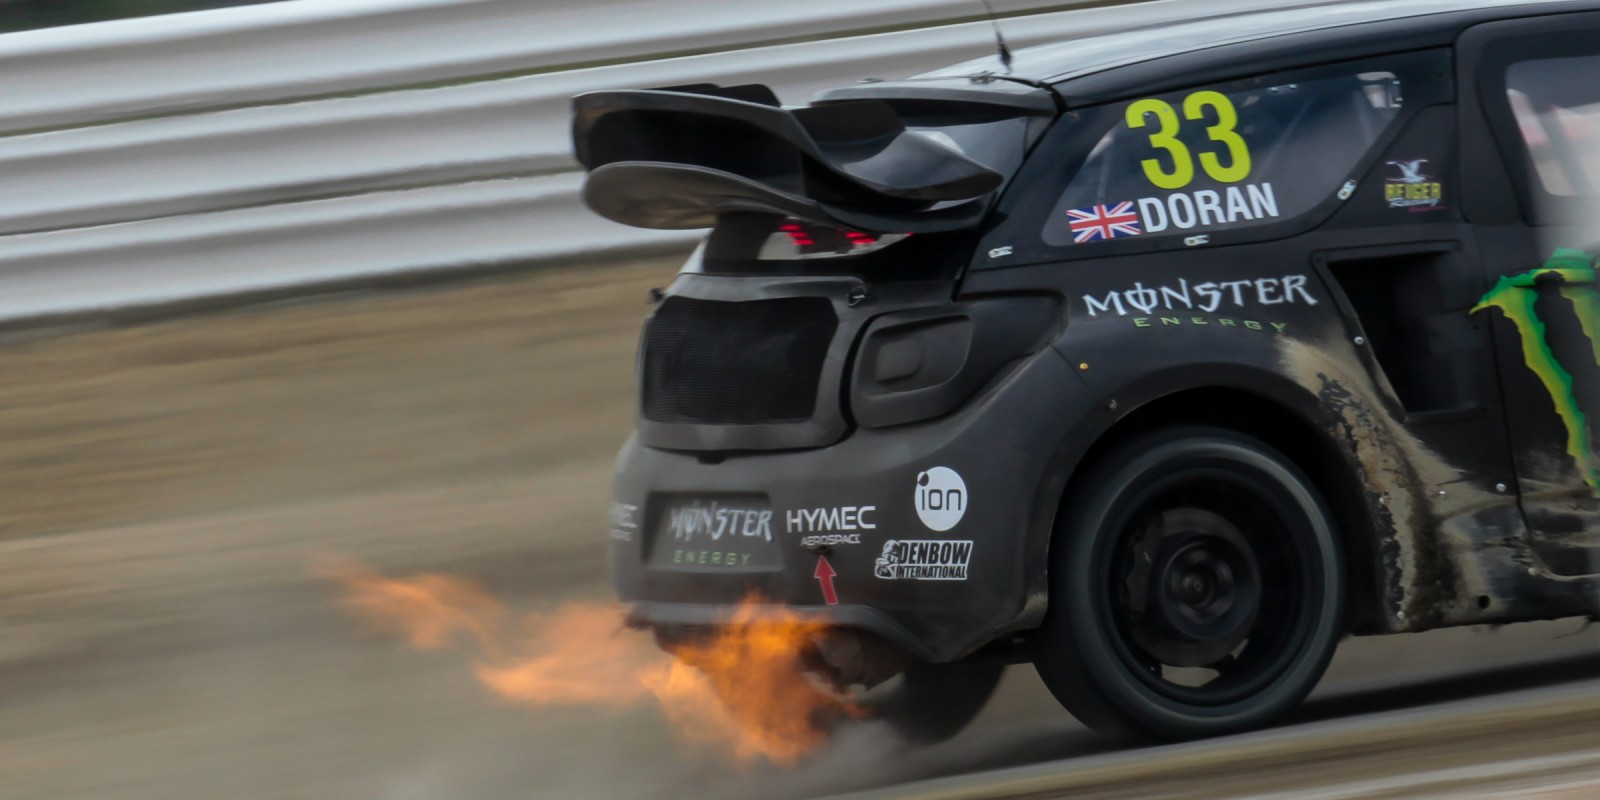 Liam Doran at round nine of the FIA World Rallycross Championship hosted in France